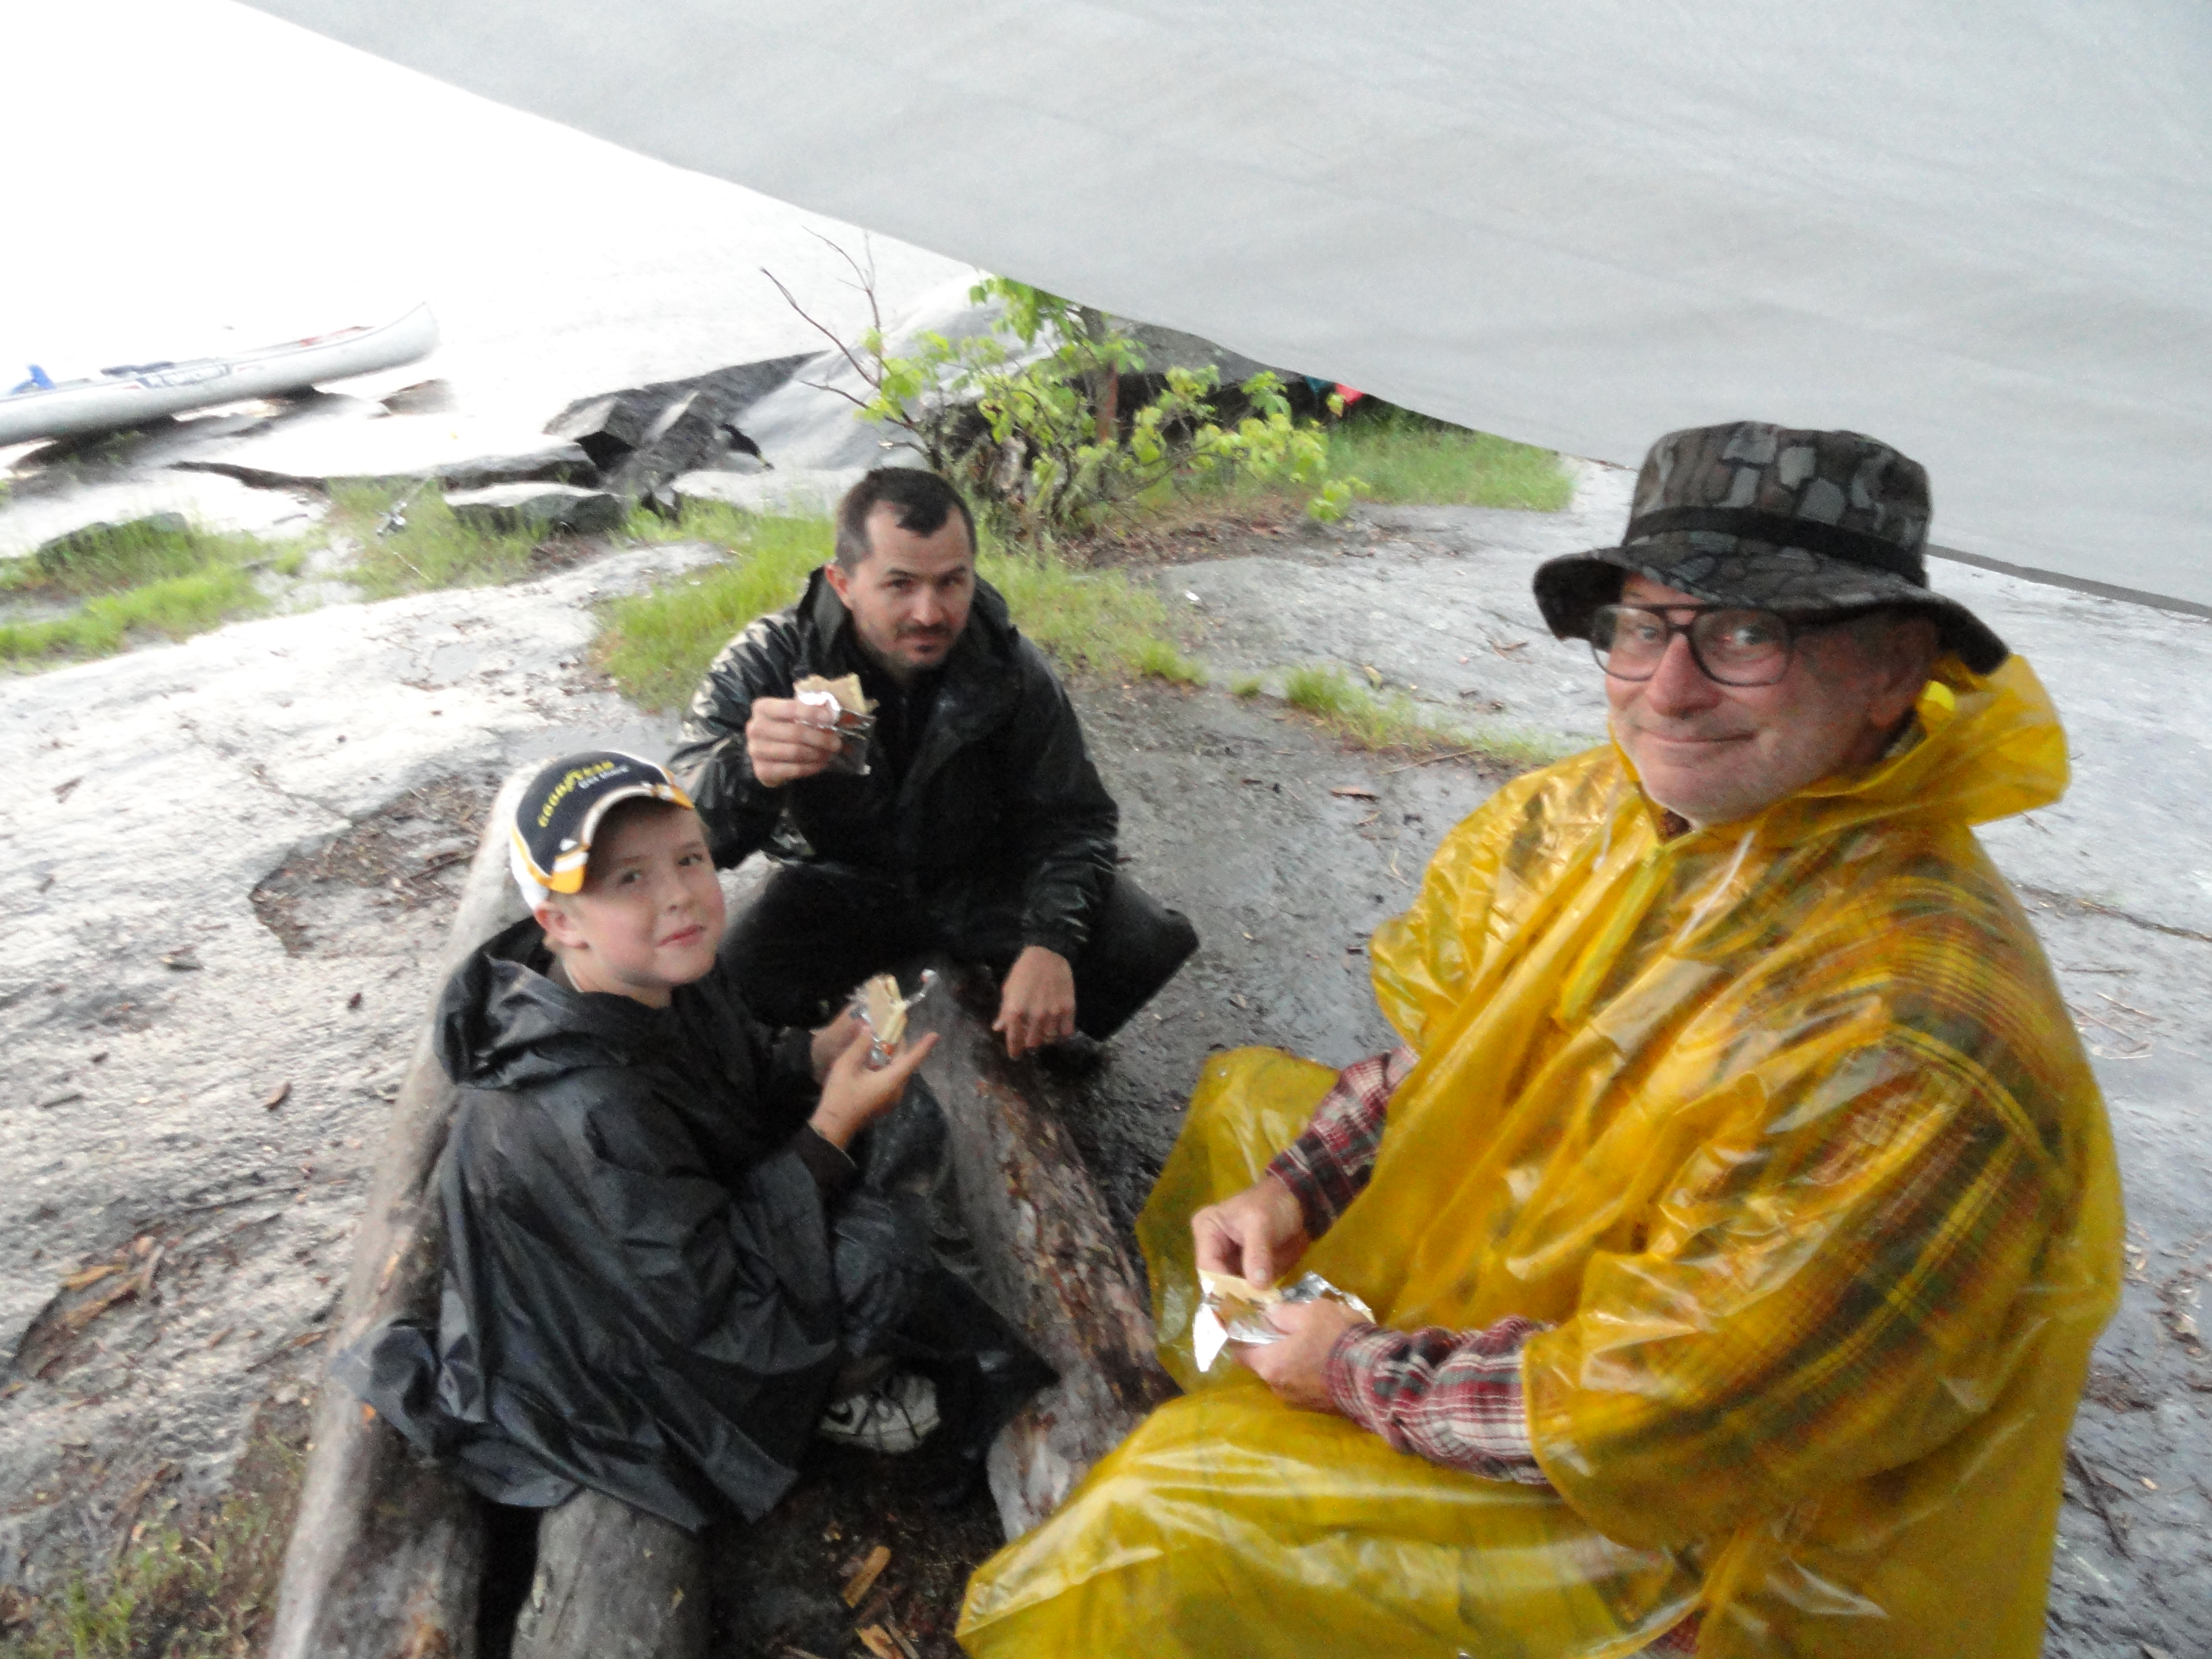 Eating pop-tarts under the tarp in the cold rain.